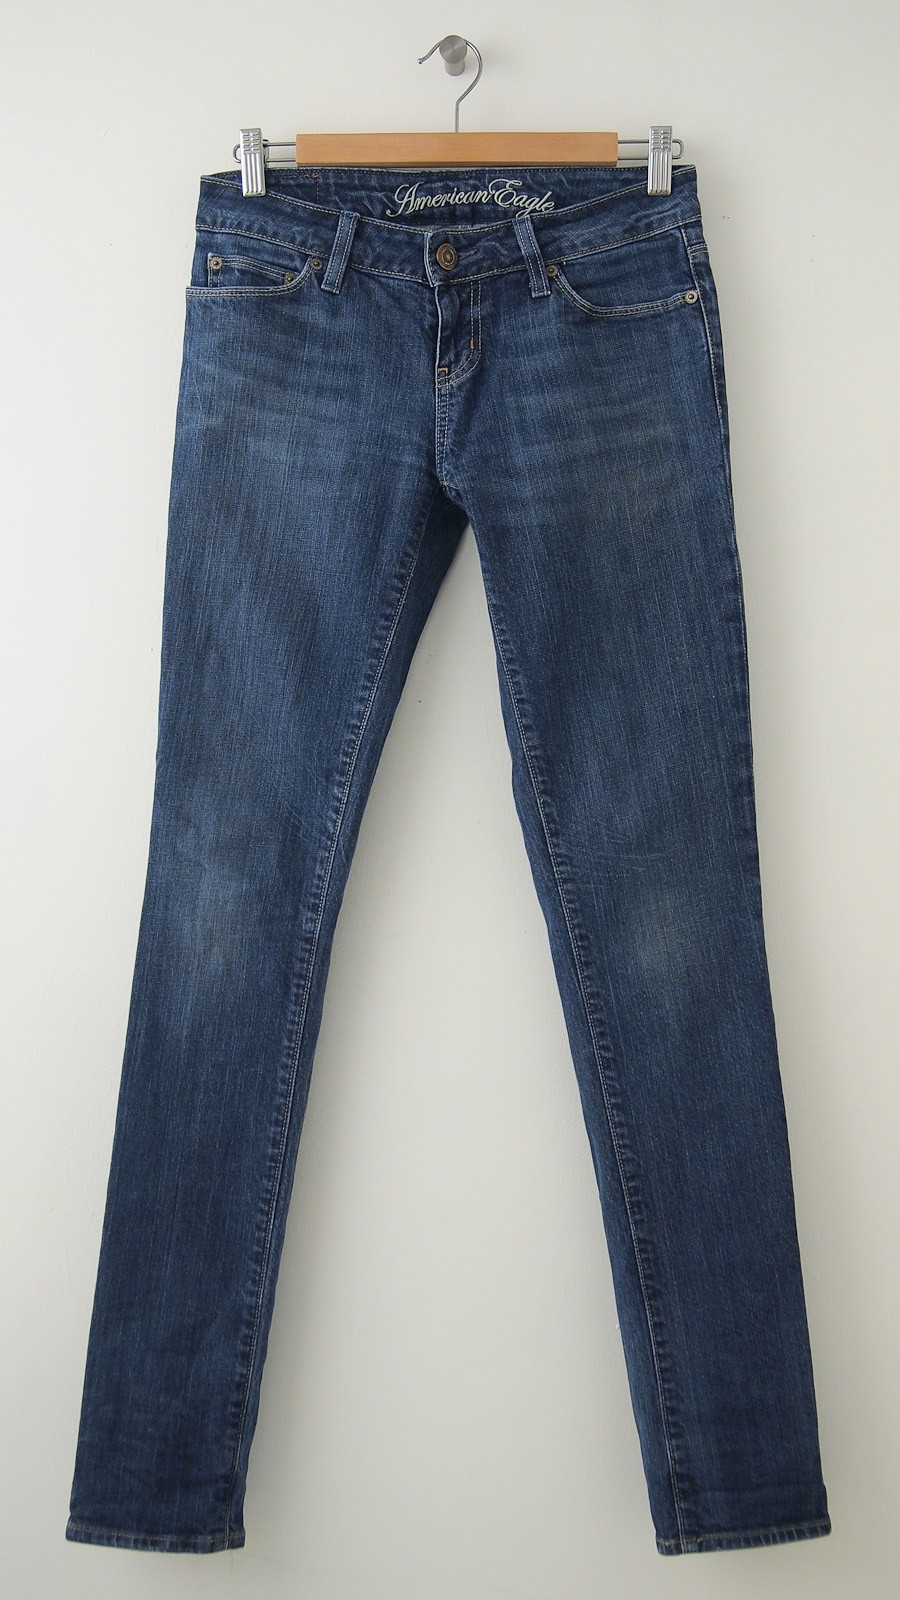 Fantastic 73 Off American Eagle Outfitters Pants  Women39s Jeans From Jennifer